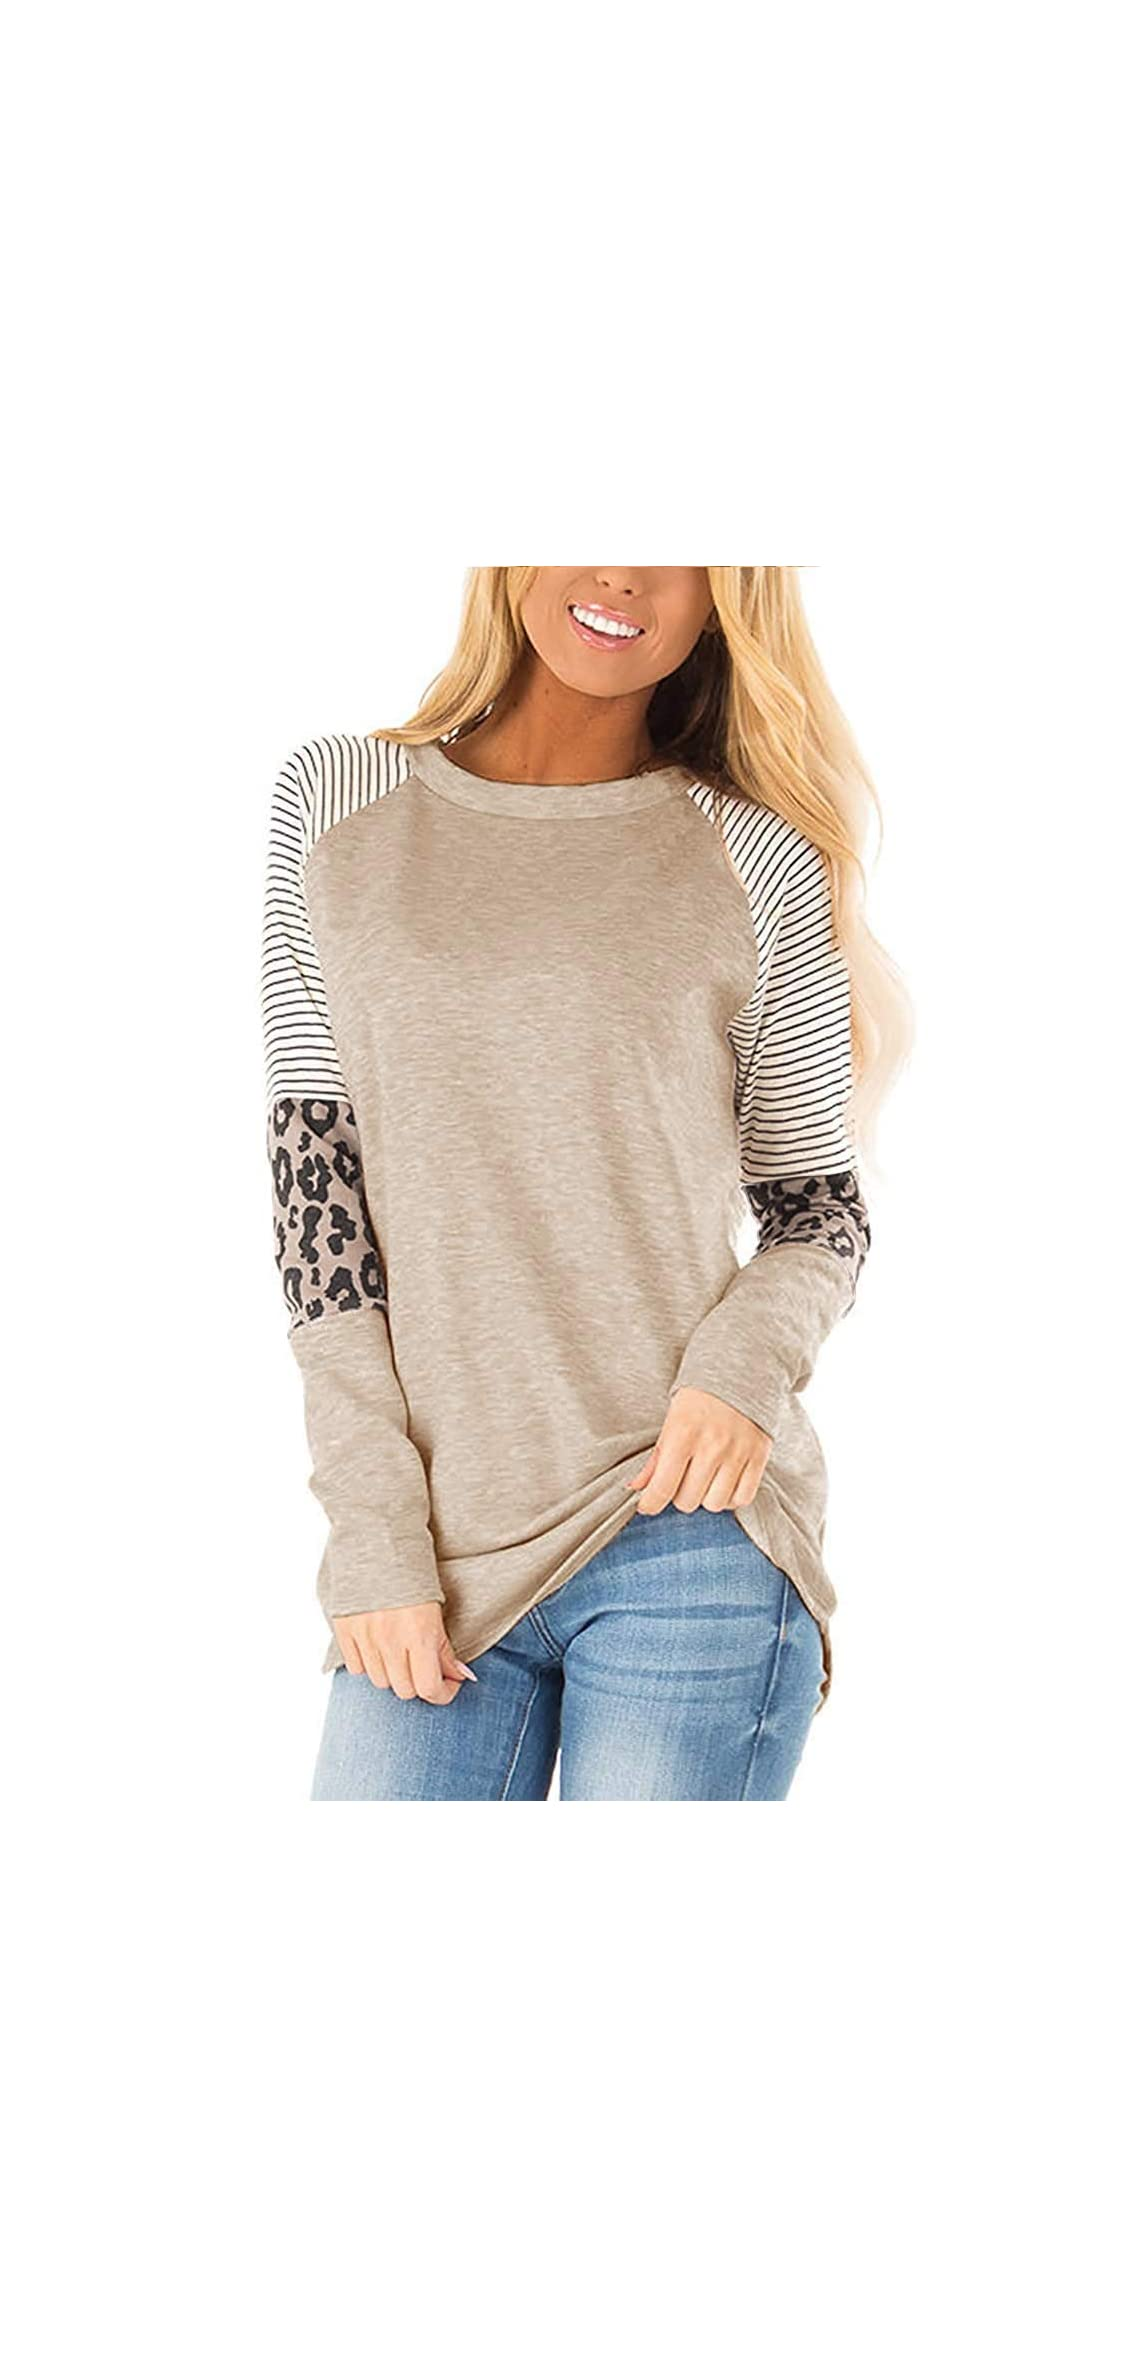 Women's Long Sleeve Leopard Print Tops Striped Color T